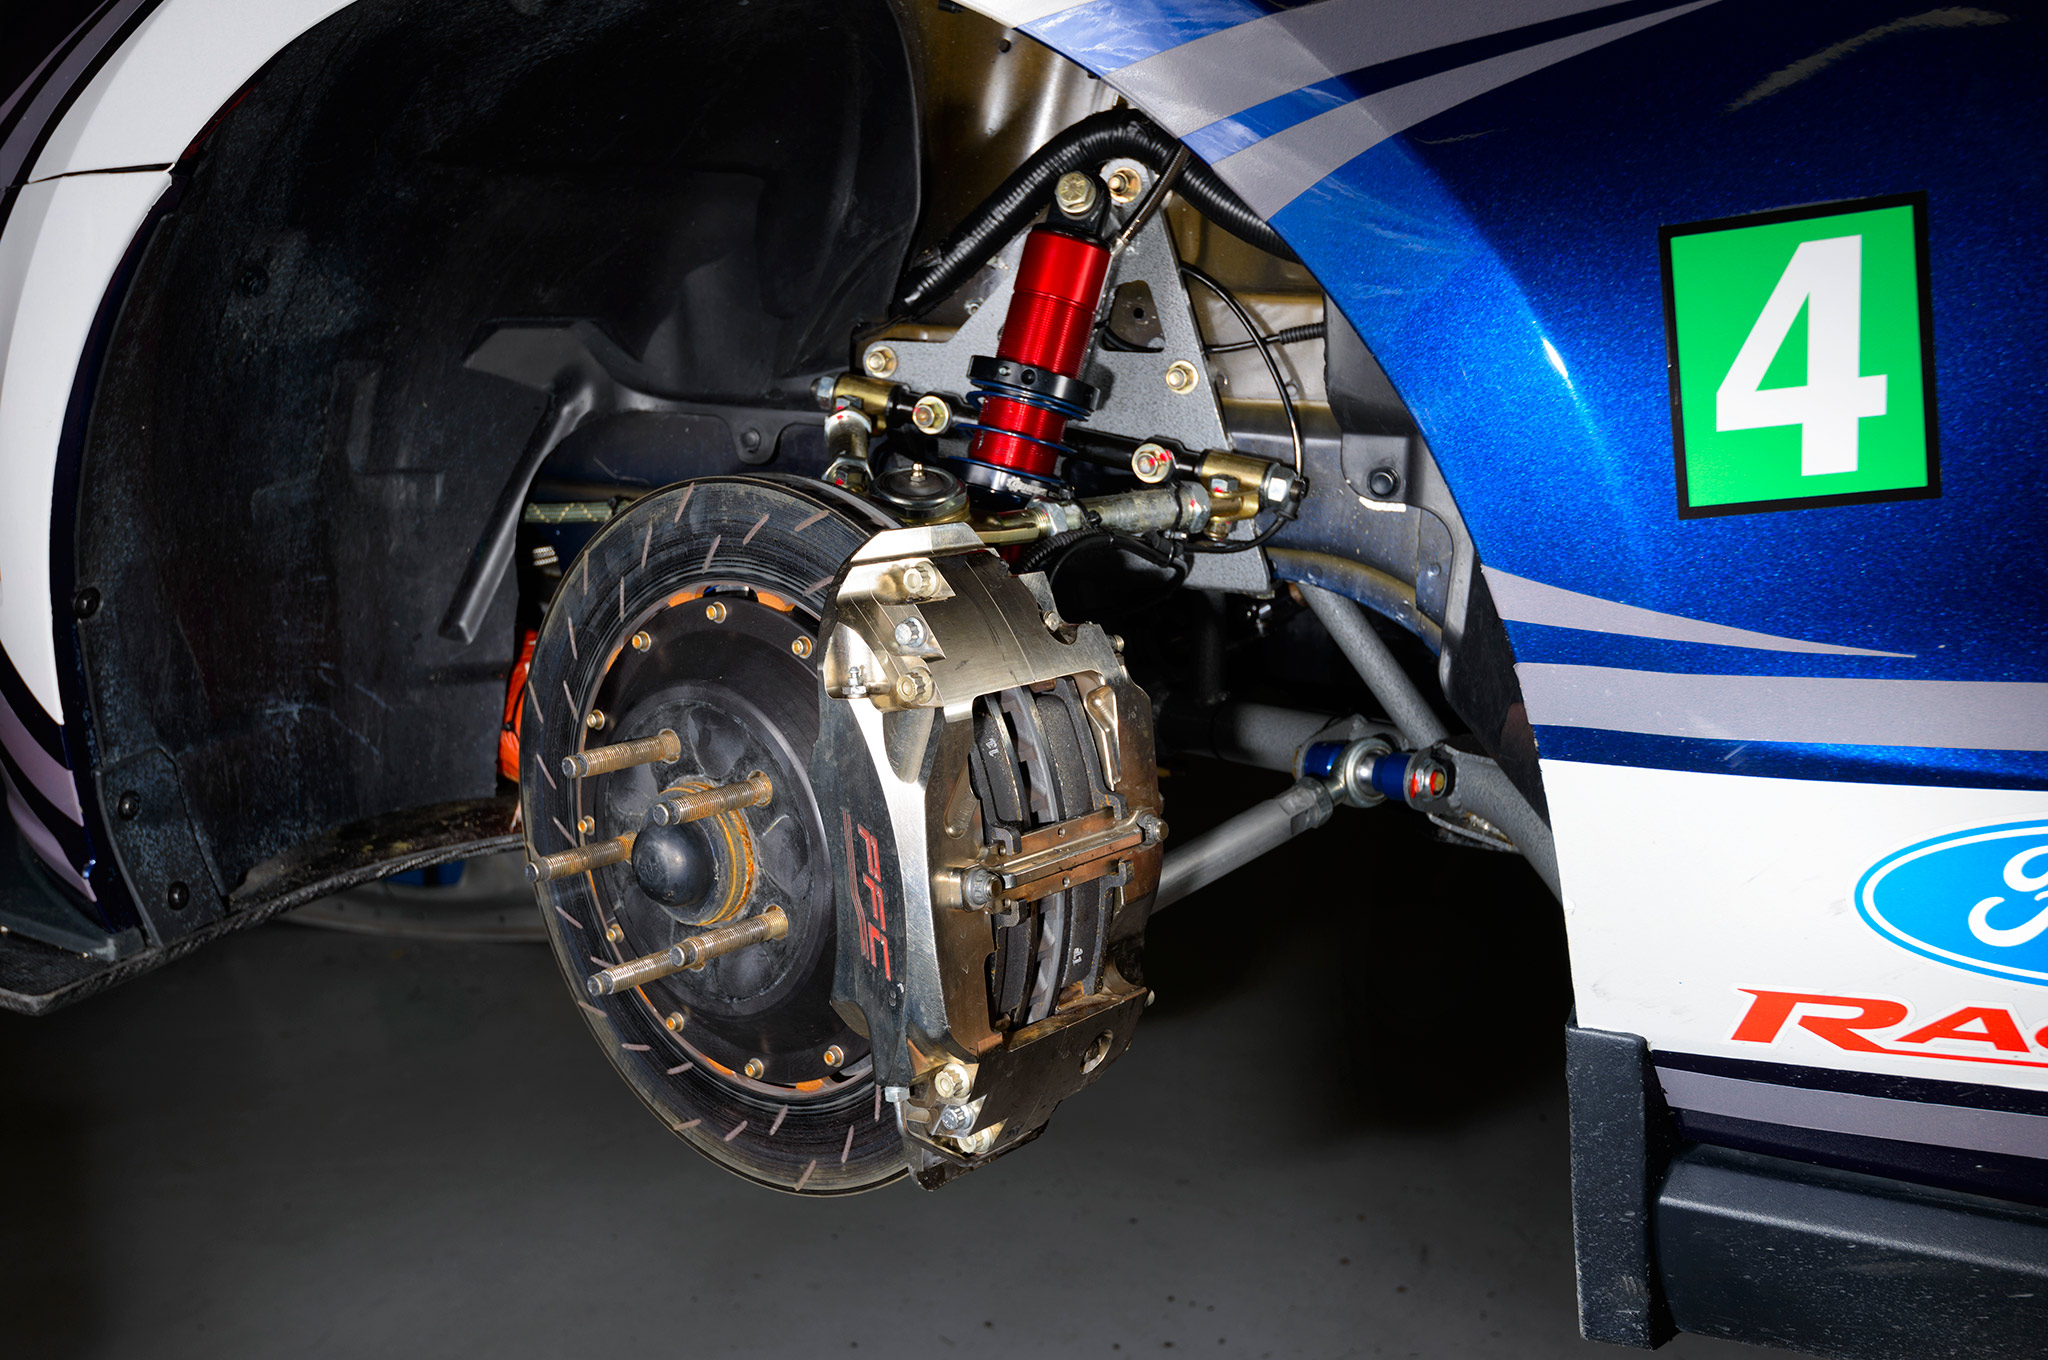 The front brake package includes 378mm rotors clamped by massive six-piston Performance Friction calipers.